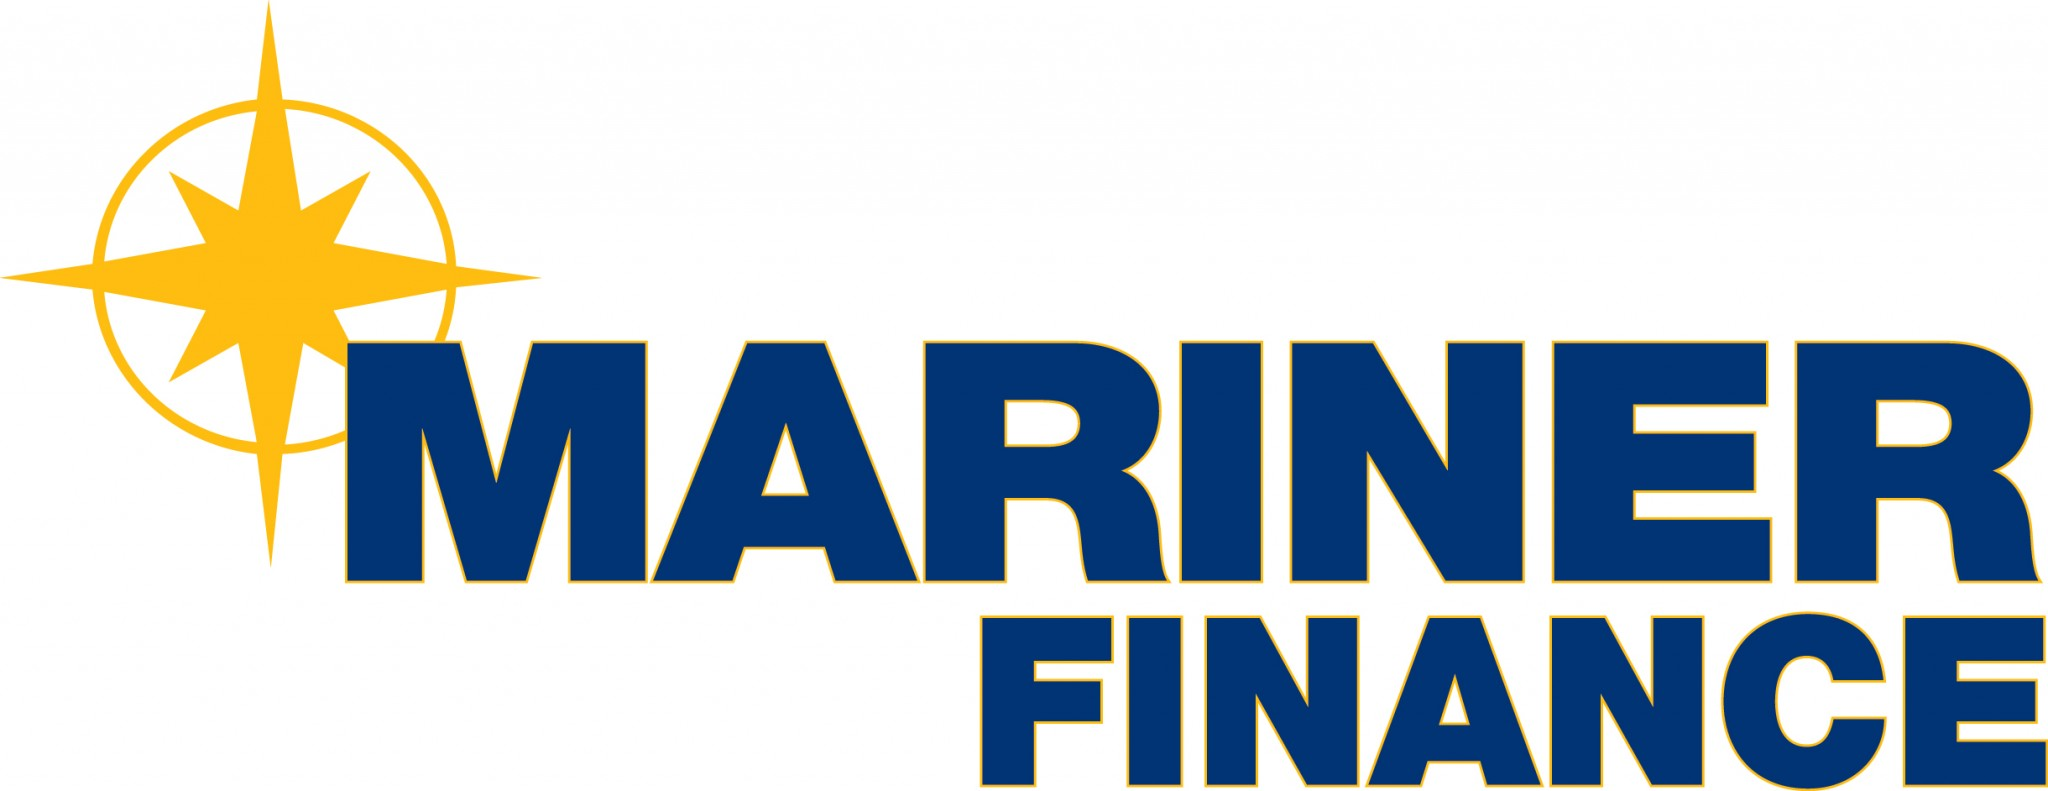 Logo-for-NW-Mariner-Finance.jpg